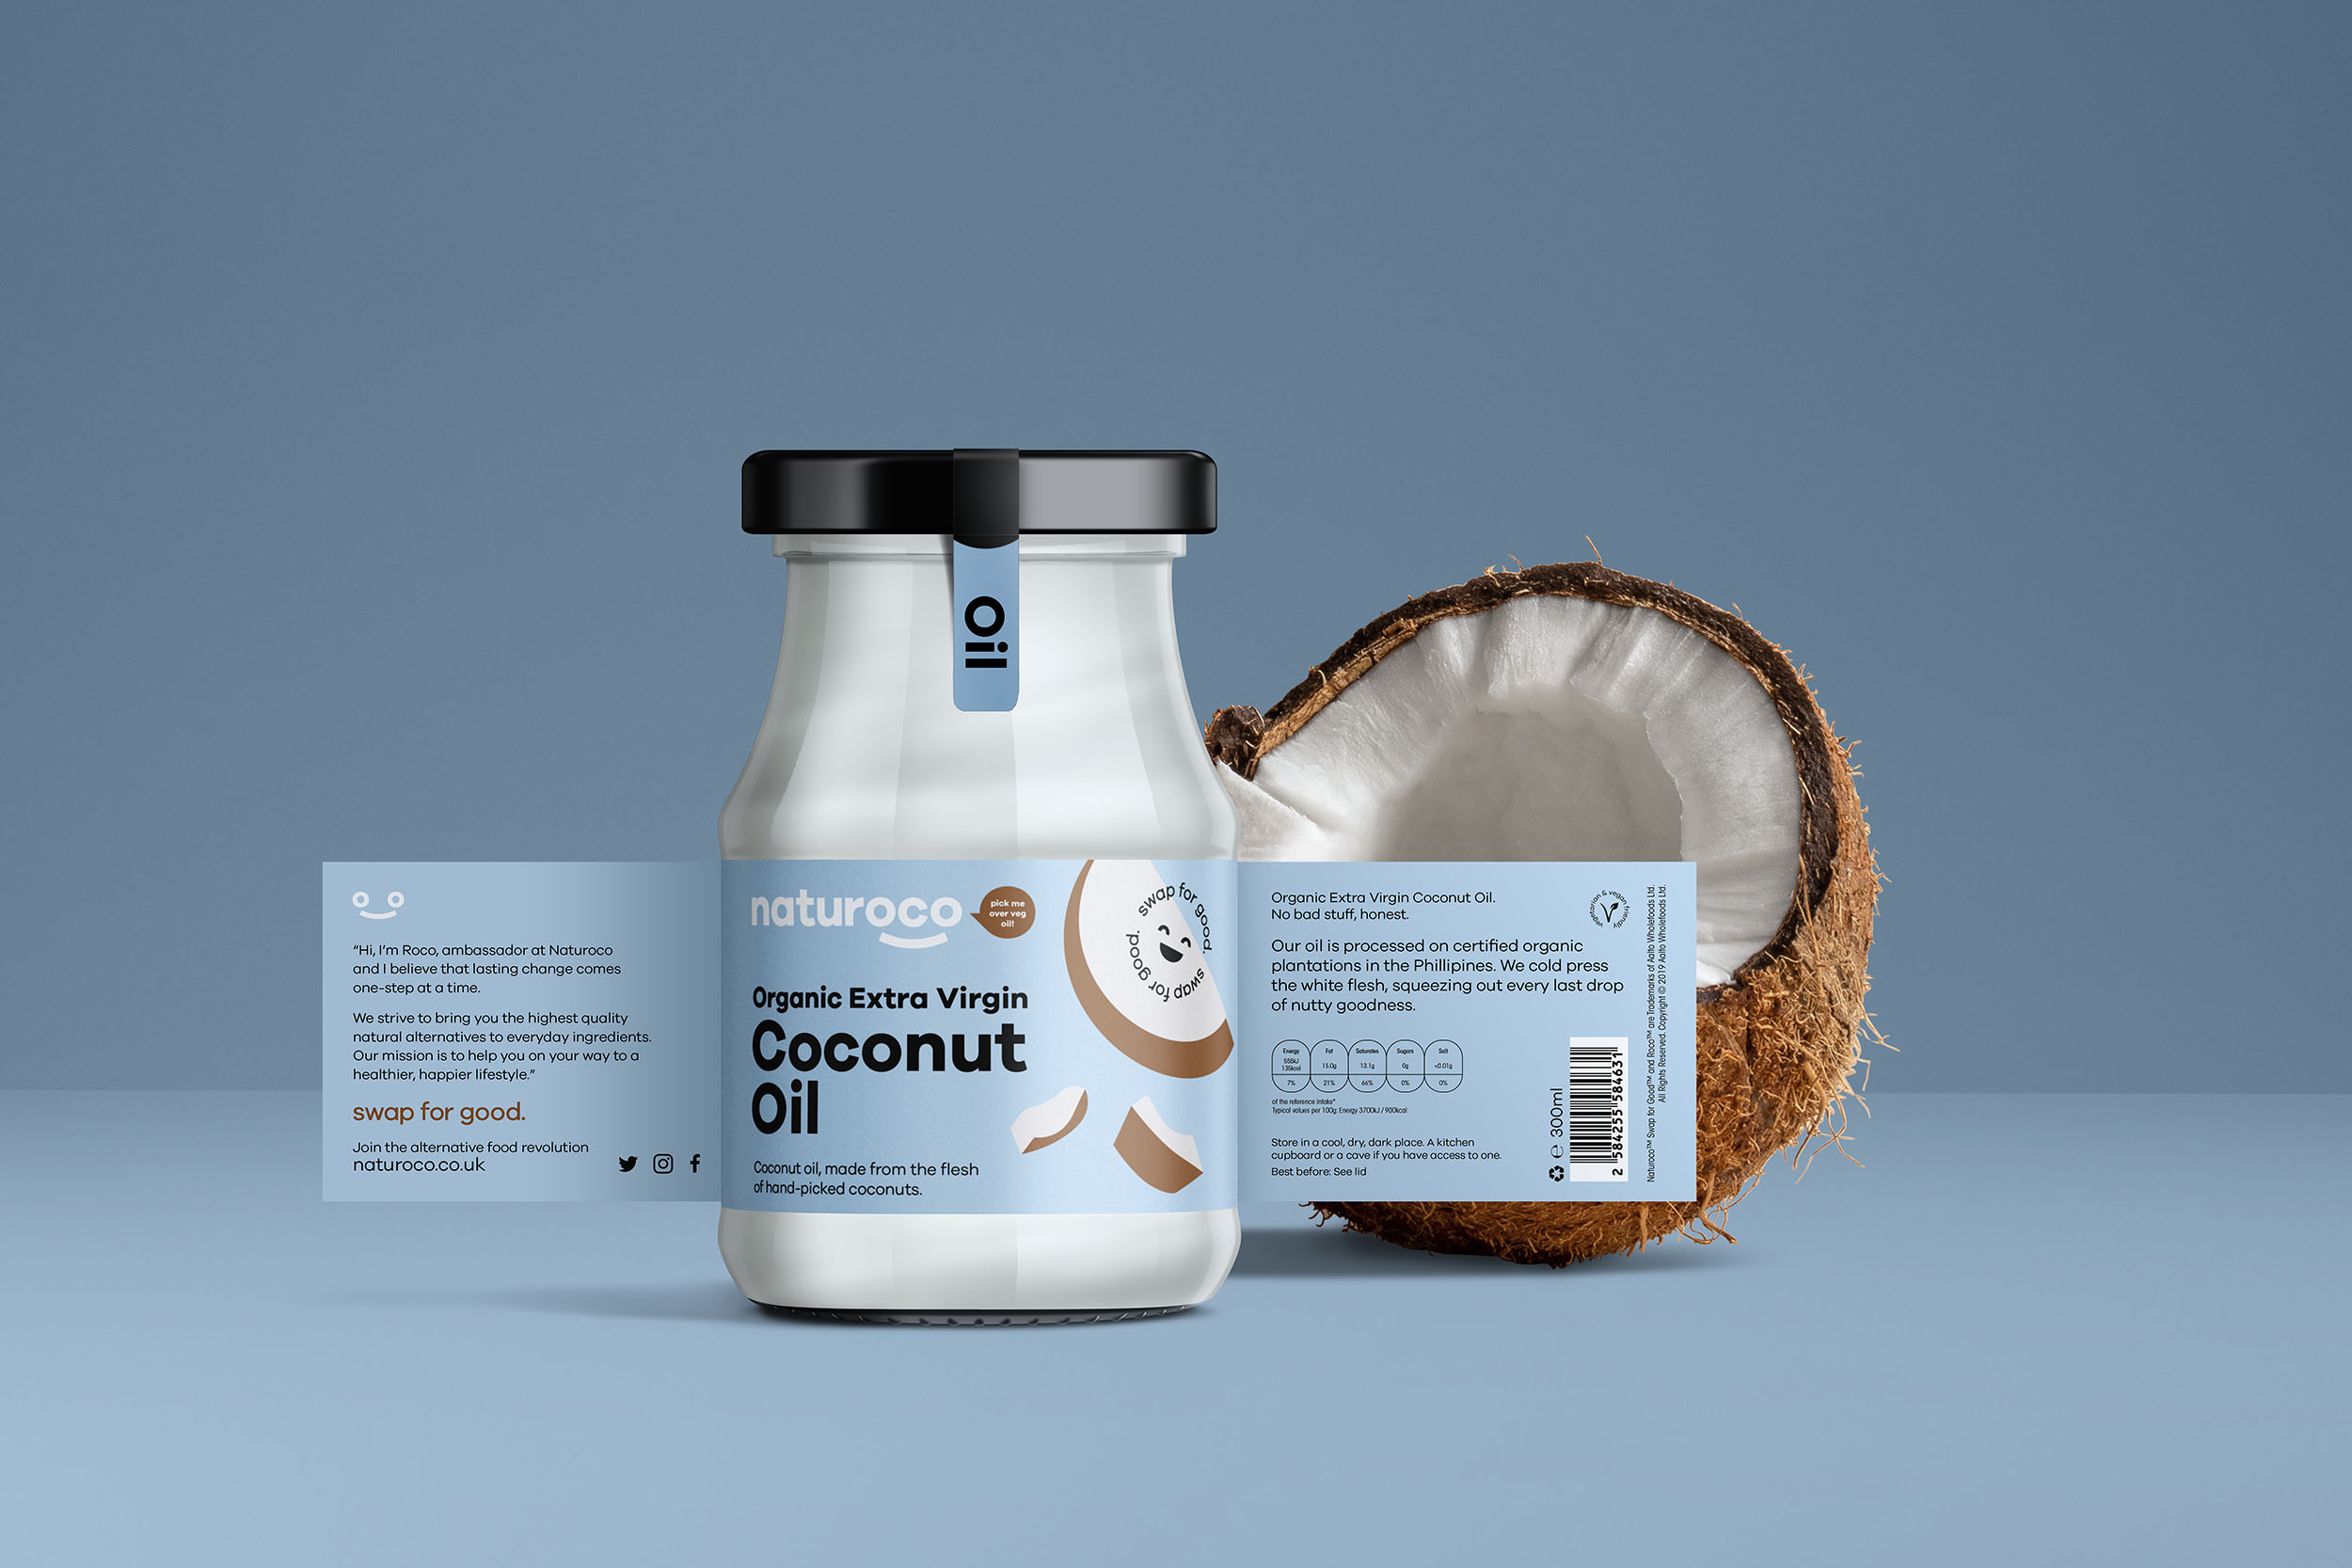 Exclusive Mockups for Branding and Package Design